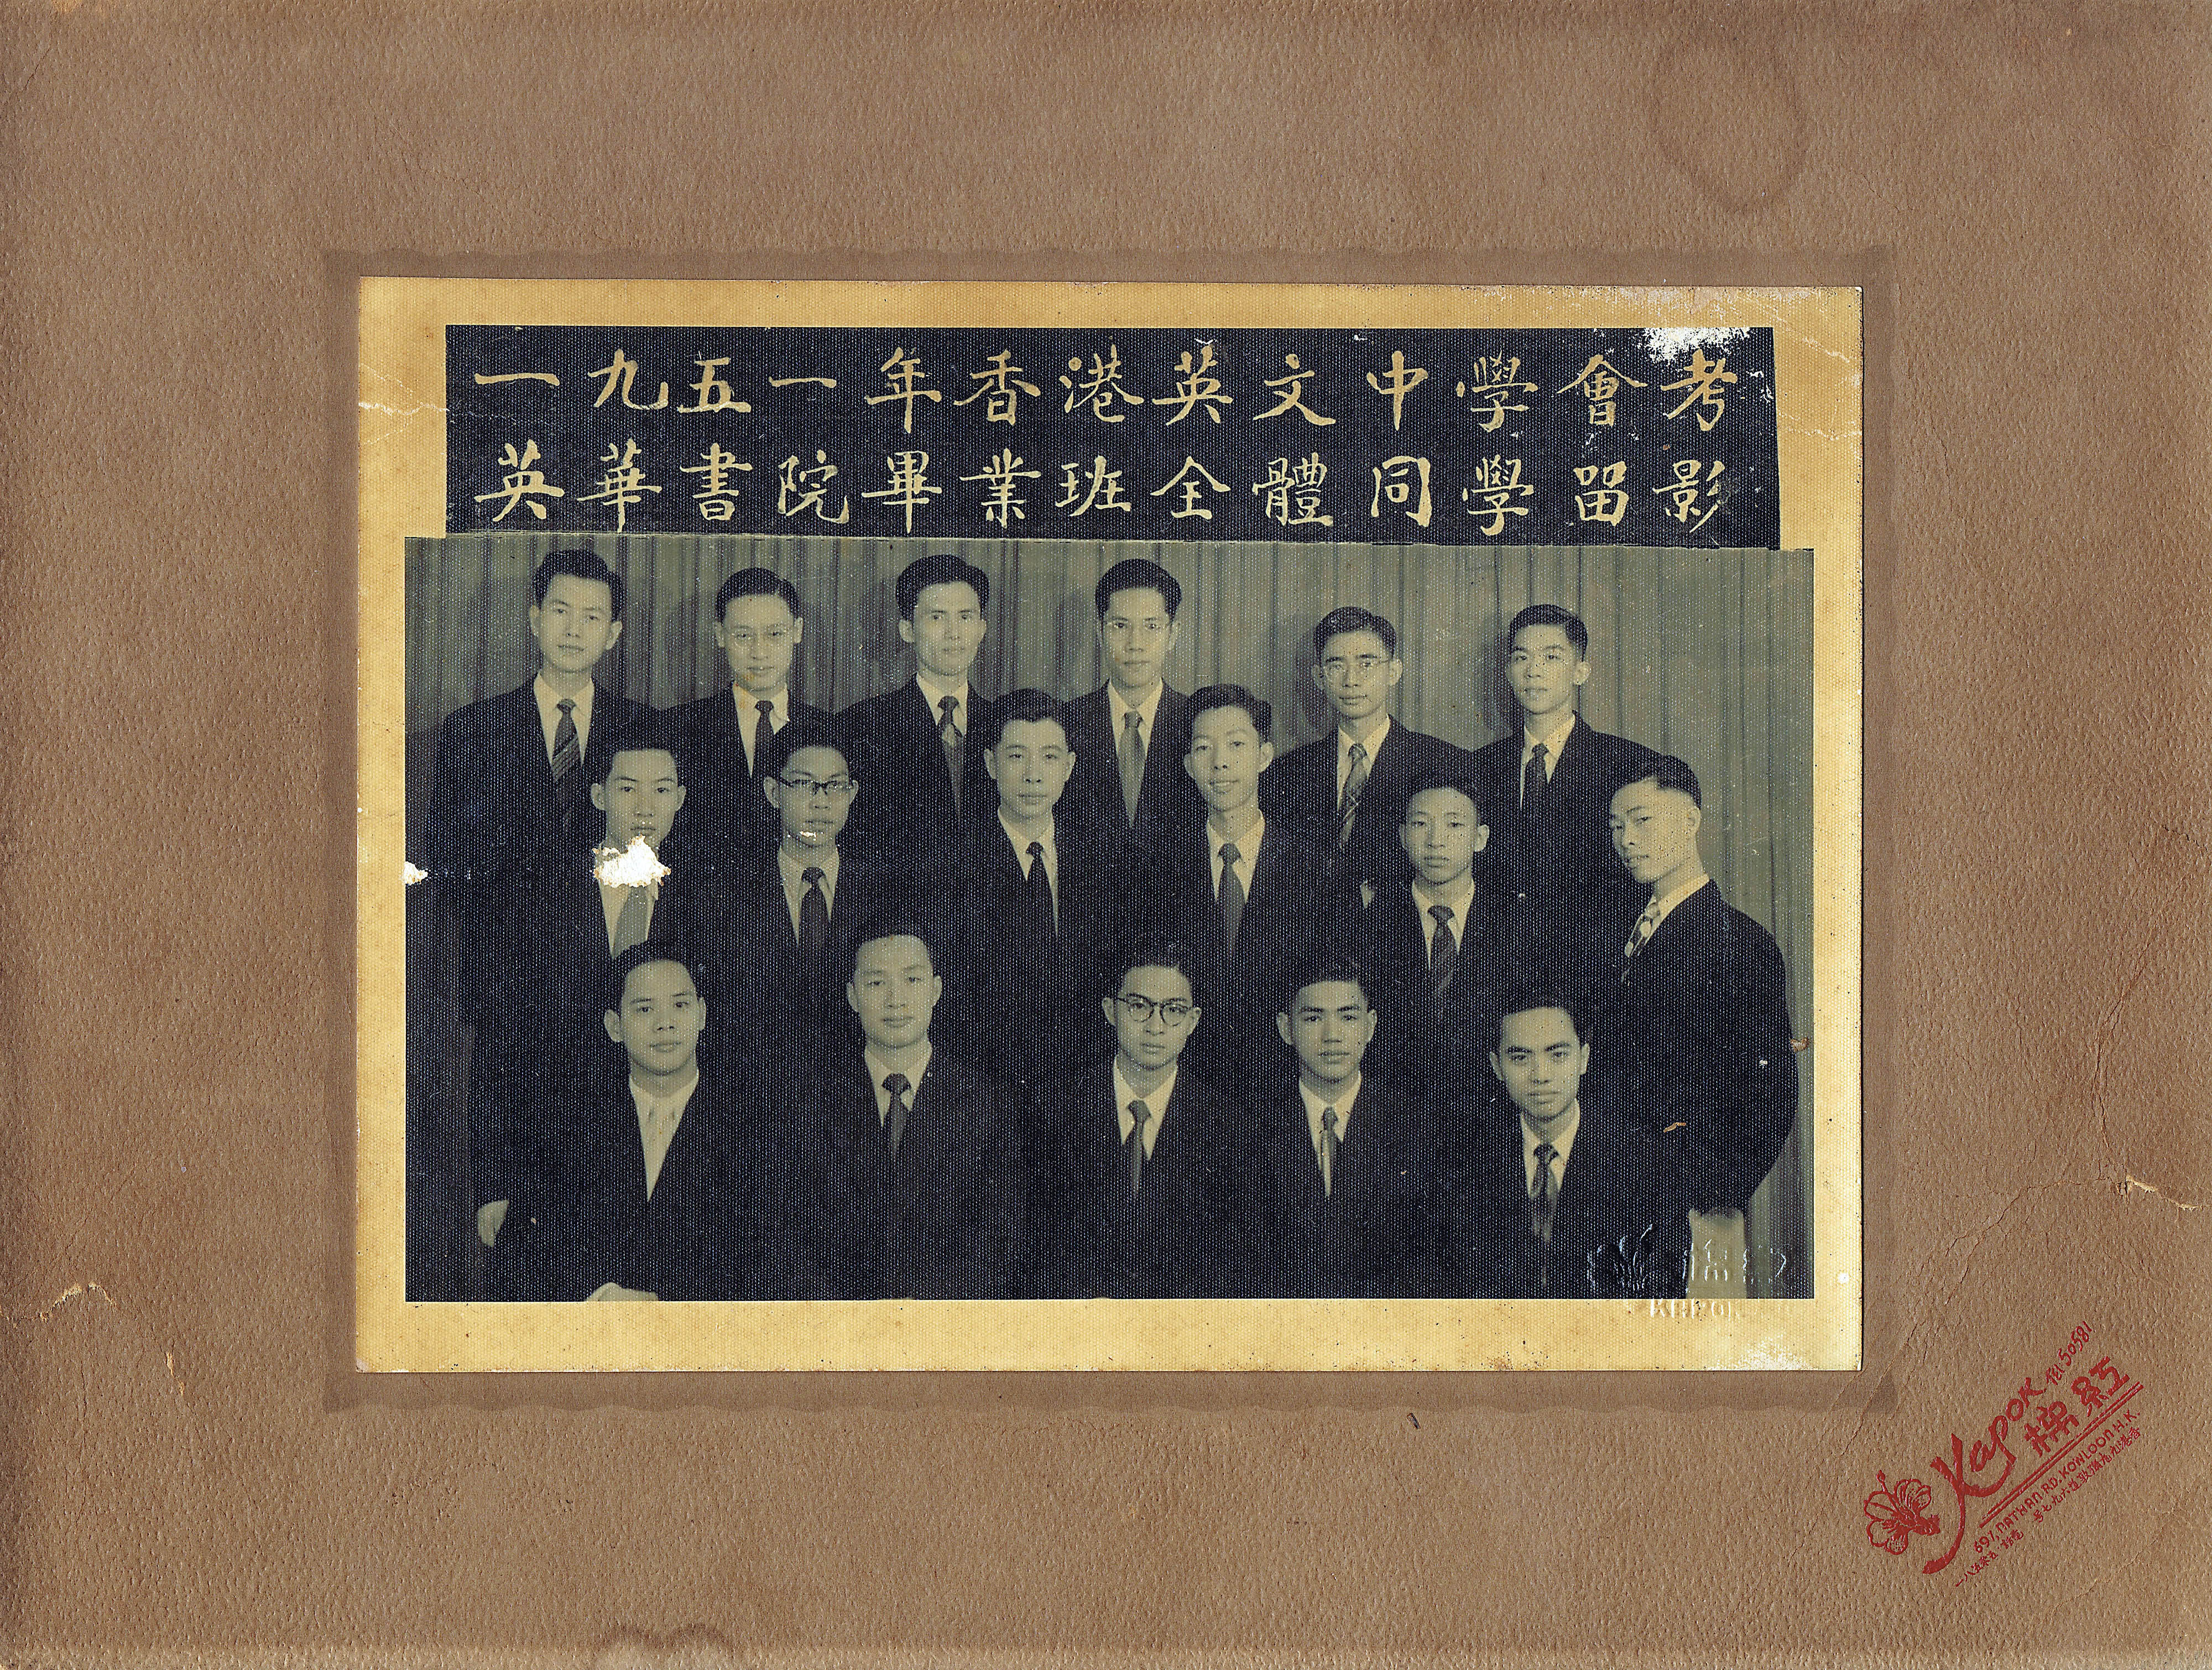 Group photo of the student of Ying Wa College ( class of 1951 for HKCE )